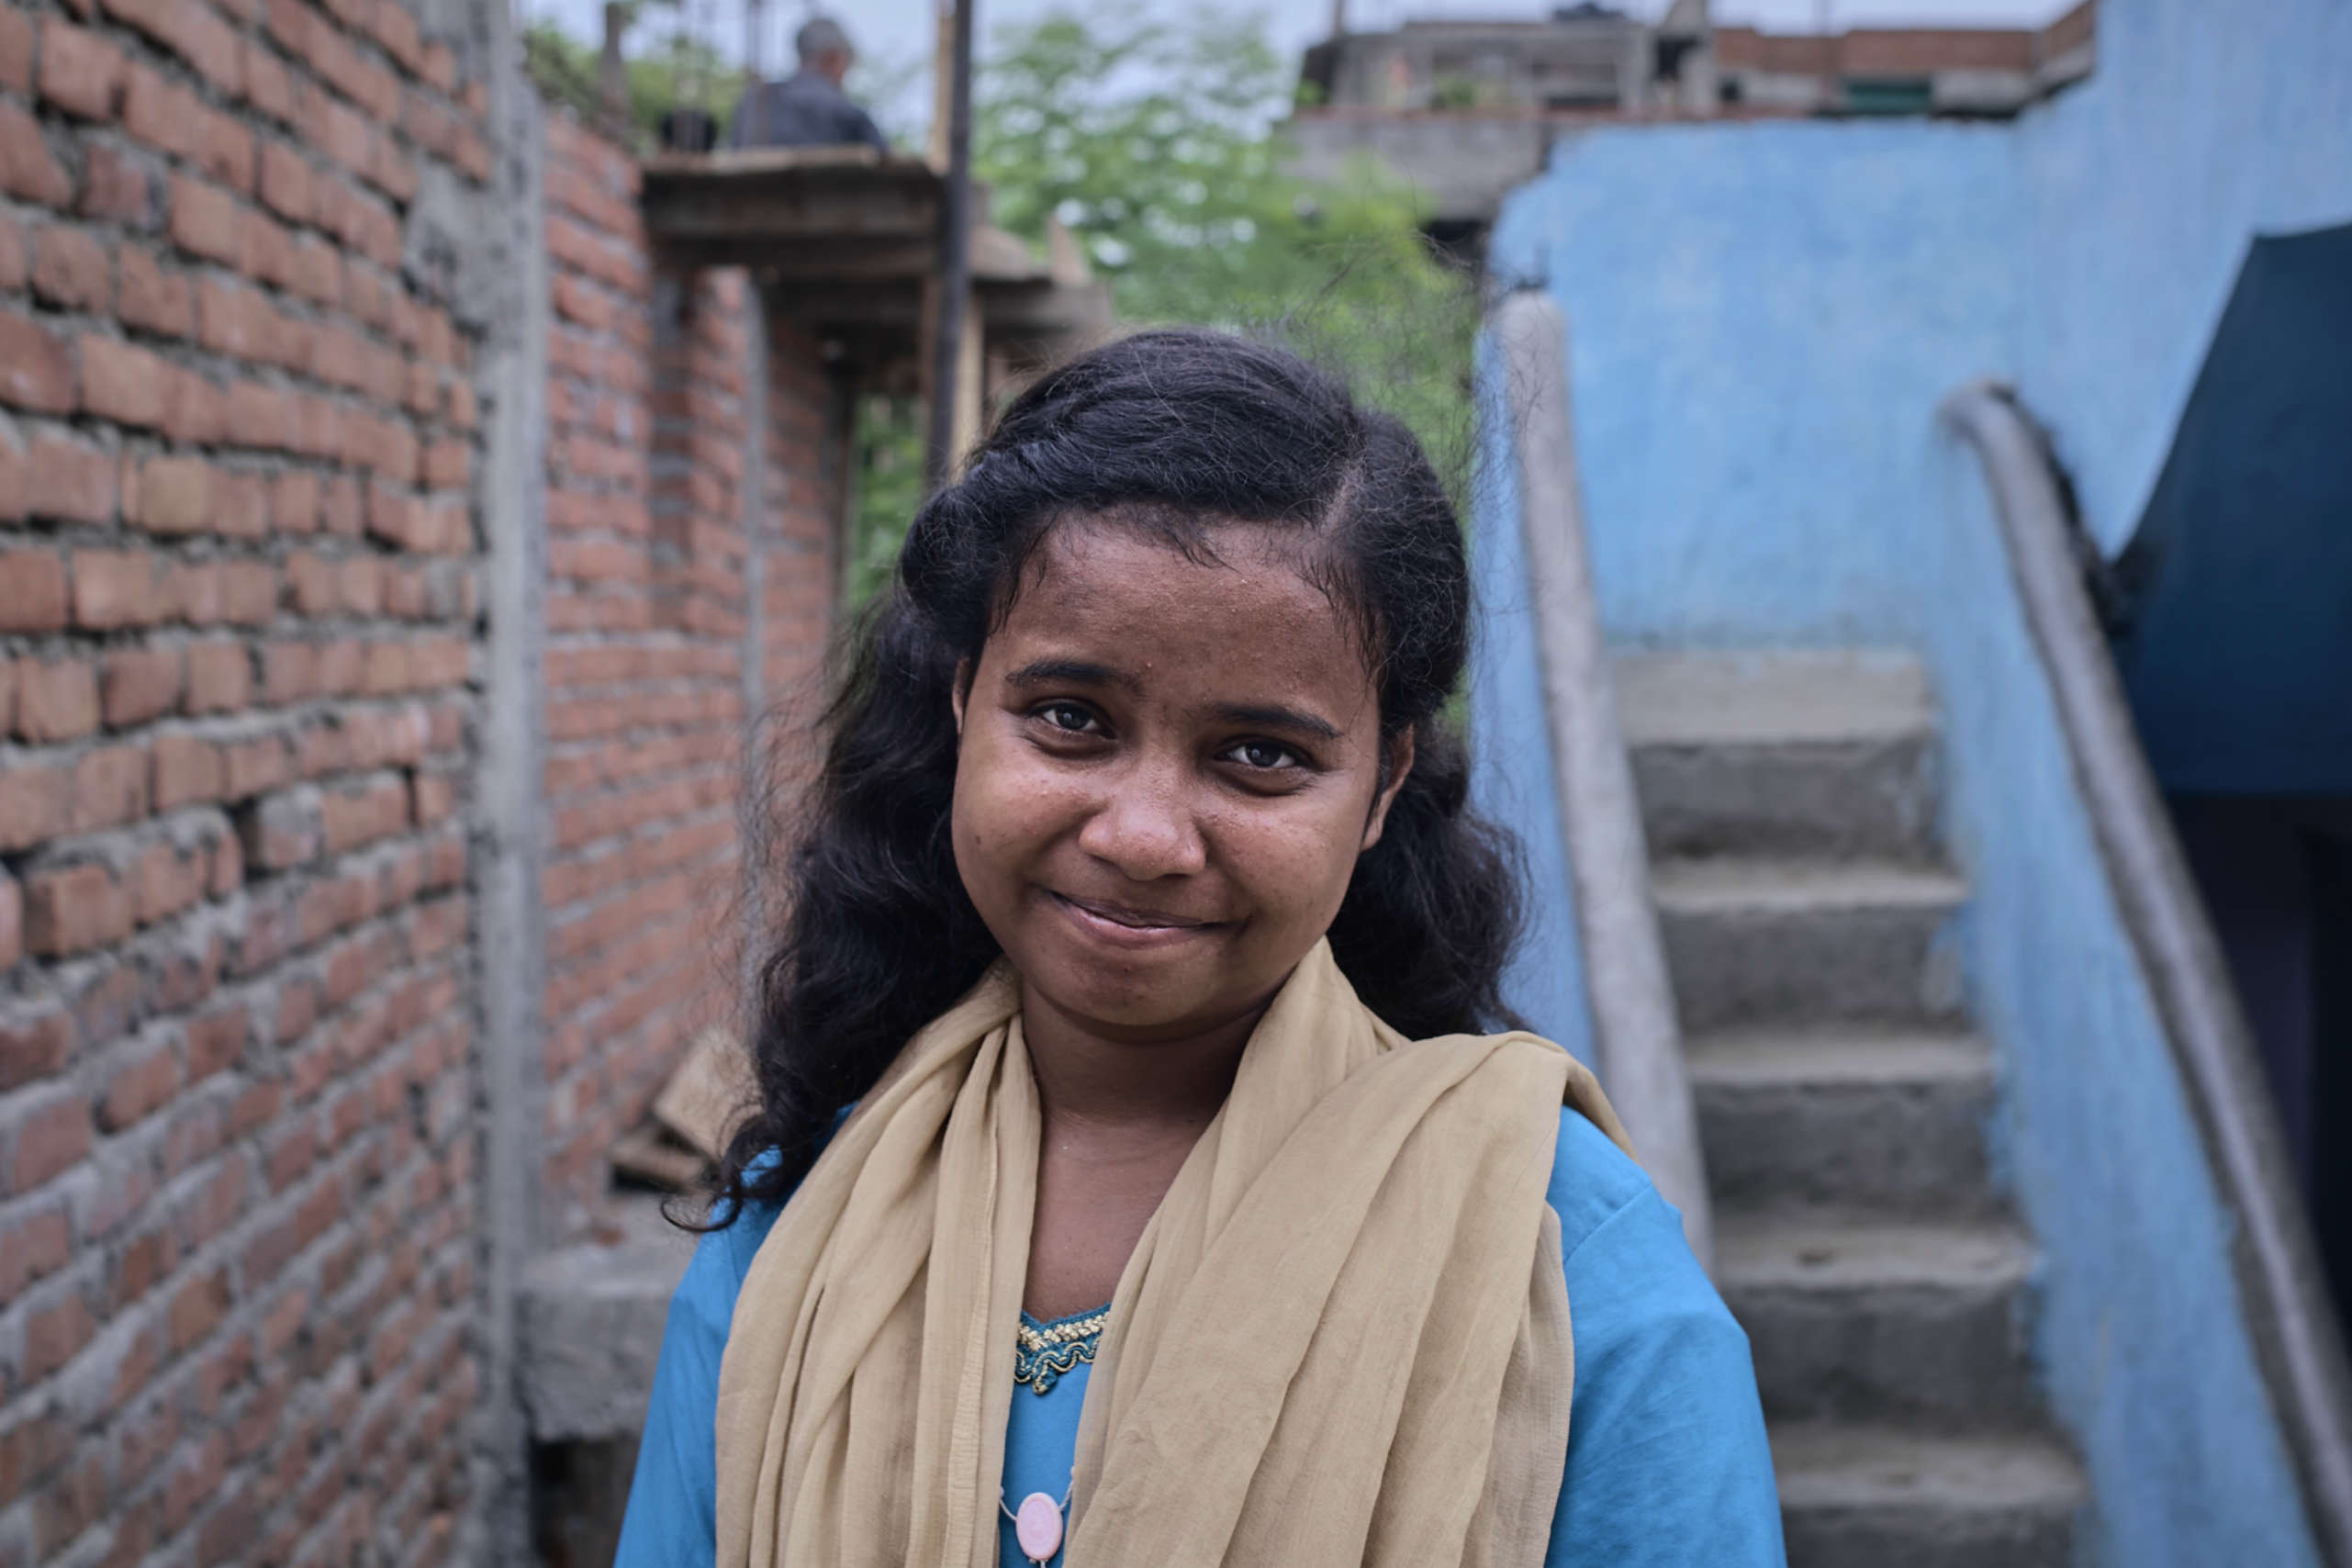 13-year-old Munni was engaged to be married, like so many girls in the slums of Patna, India, now she is a community hero and has returned to school.